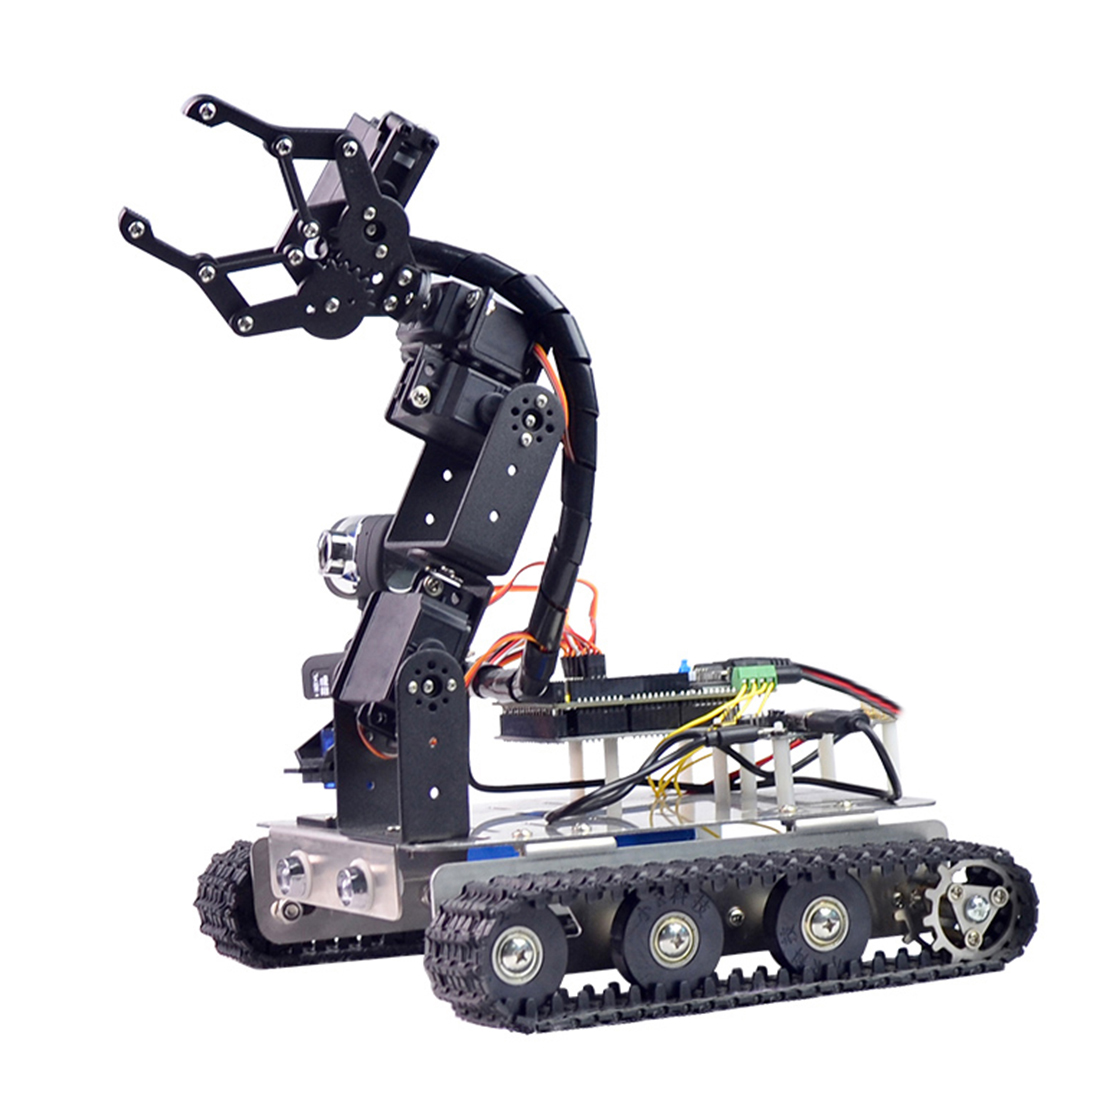 Programmable Robot DIY Wifi+Bluetooth Stainless Steel Chassis Track Tank Steam Educational Car with Arm for Raspberry Pi 4 2